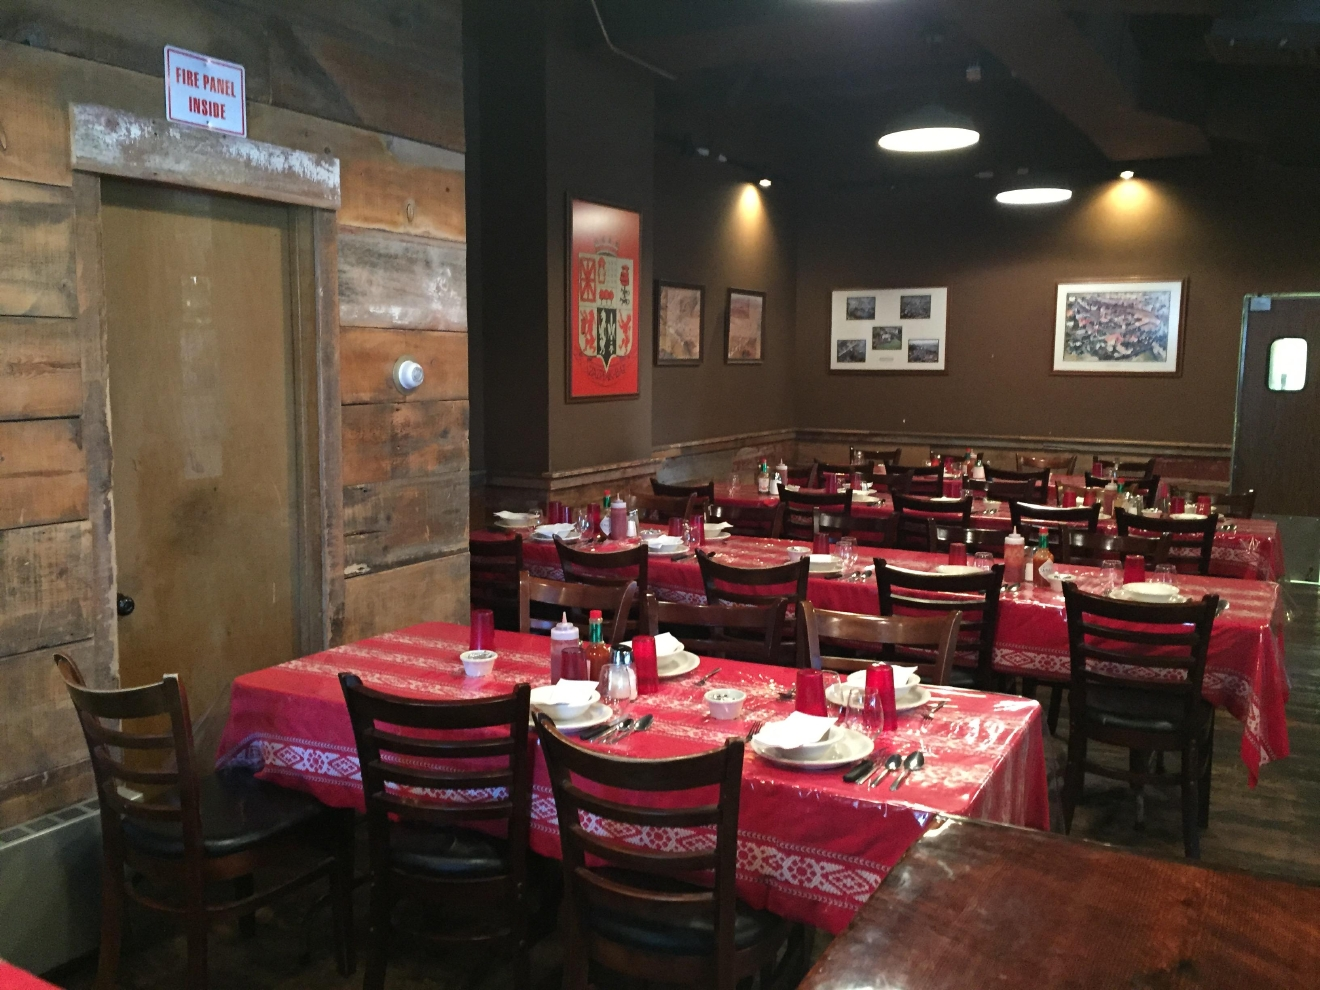 Louis' Basque Corner in Reno, Nevada (Sinclair Broadcast Group)